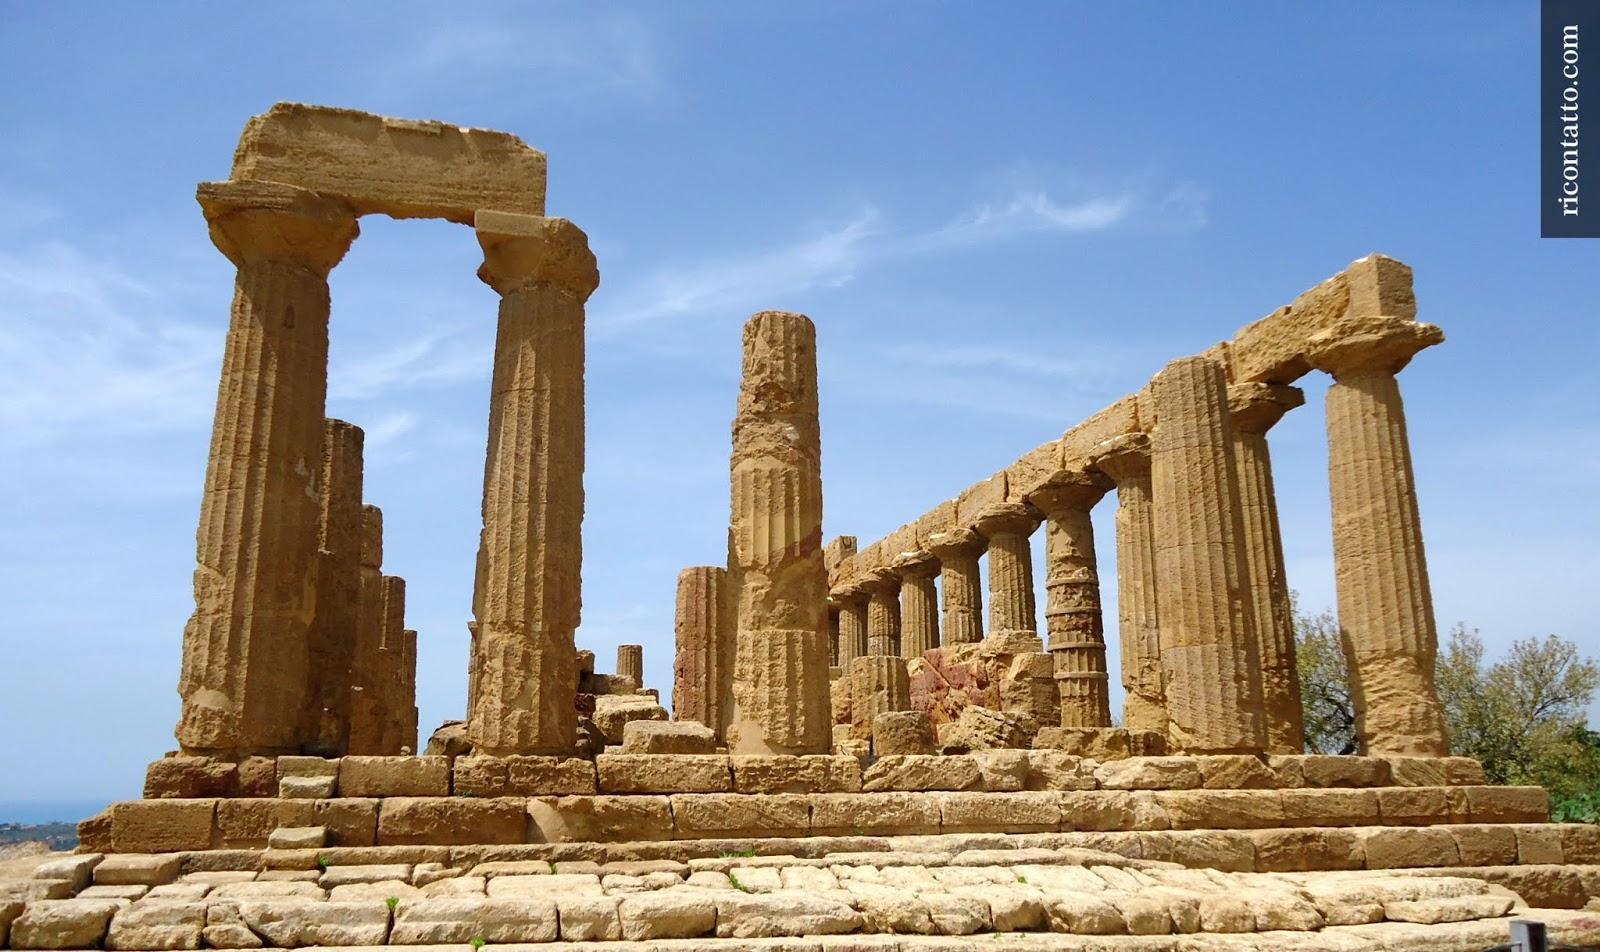 Agrigento, Sicilia, Italy - Photo #01 by Ricontatto.com